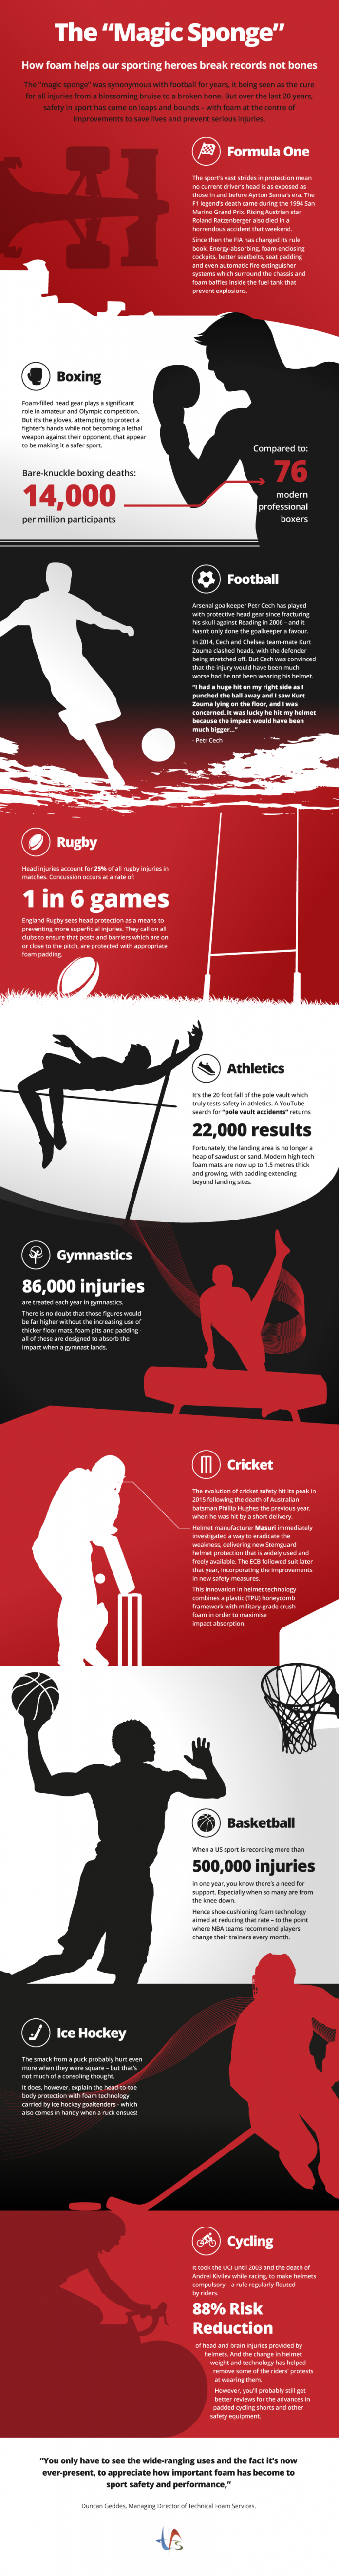 foam in sport infographic